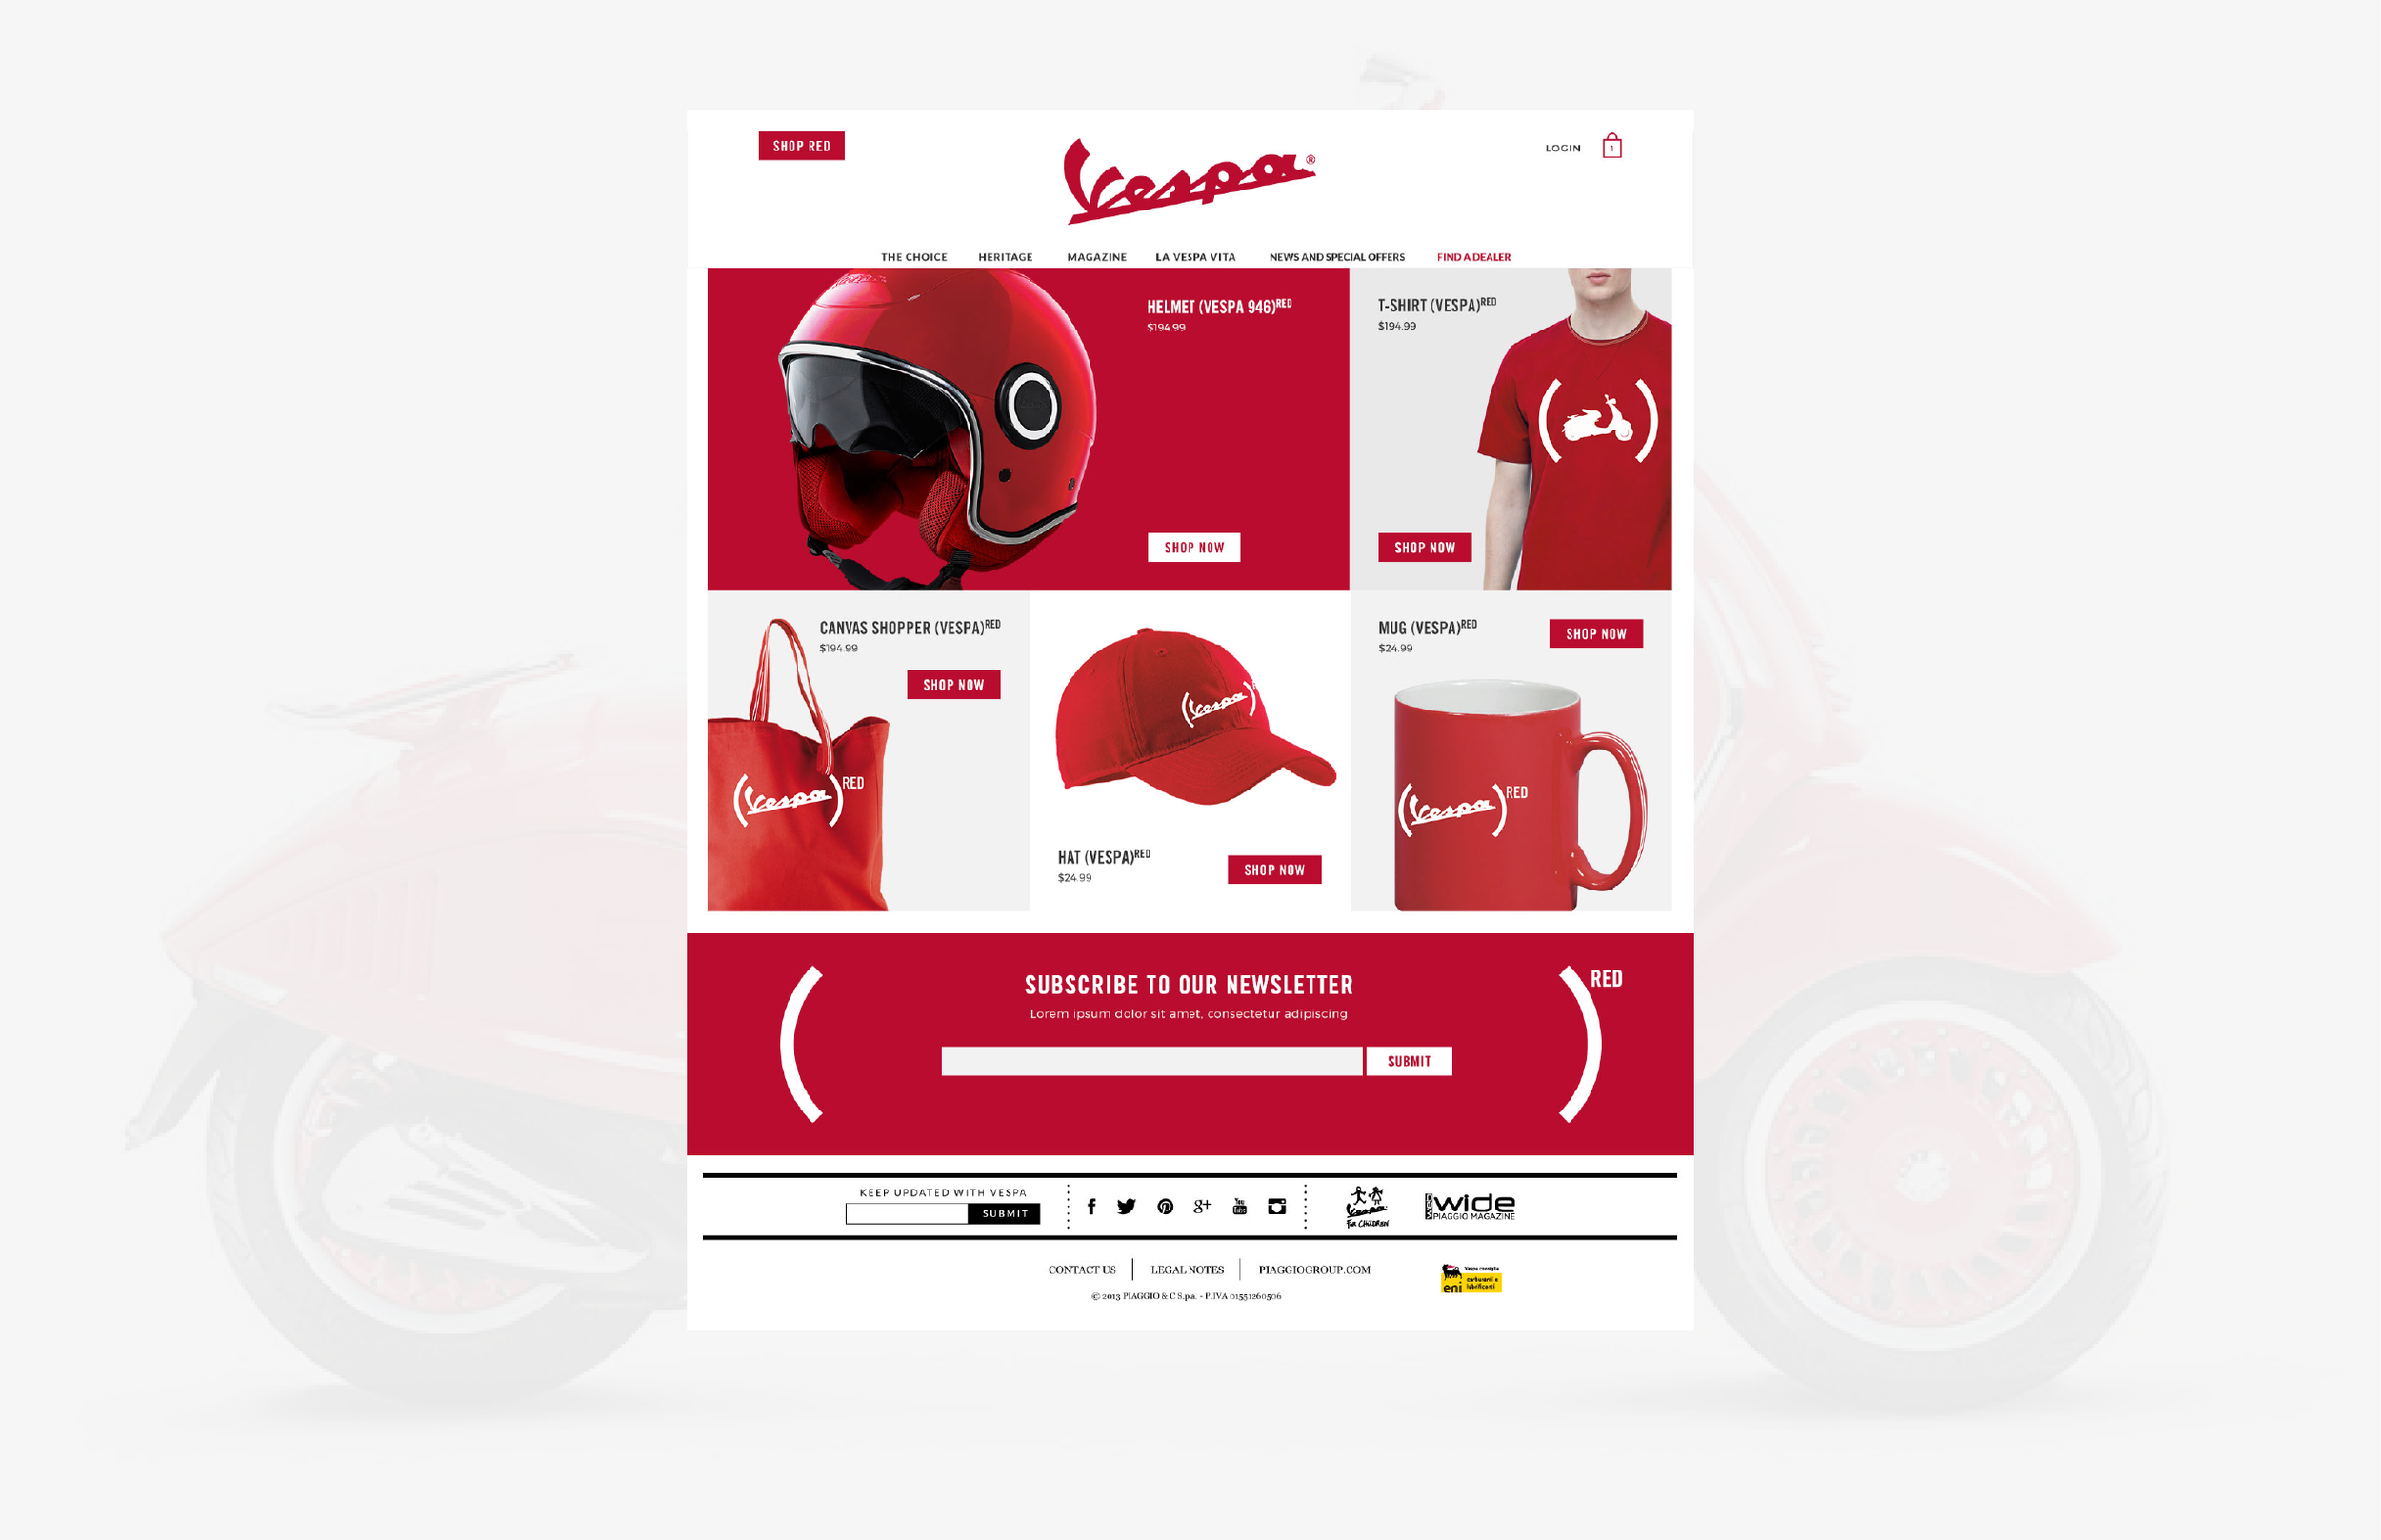 VESPA_RED-_Product Landing.png